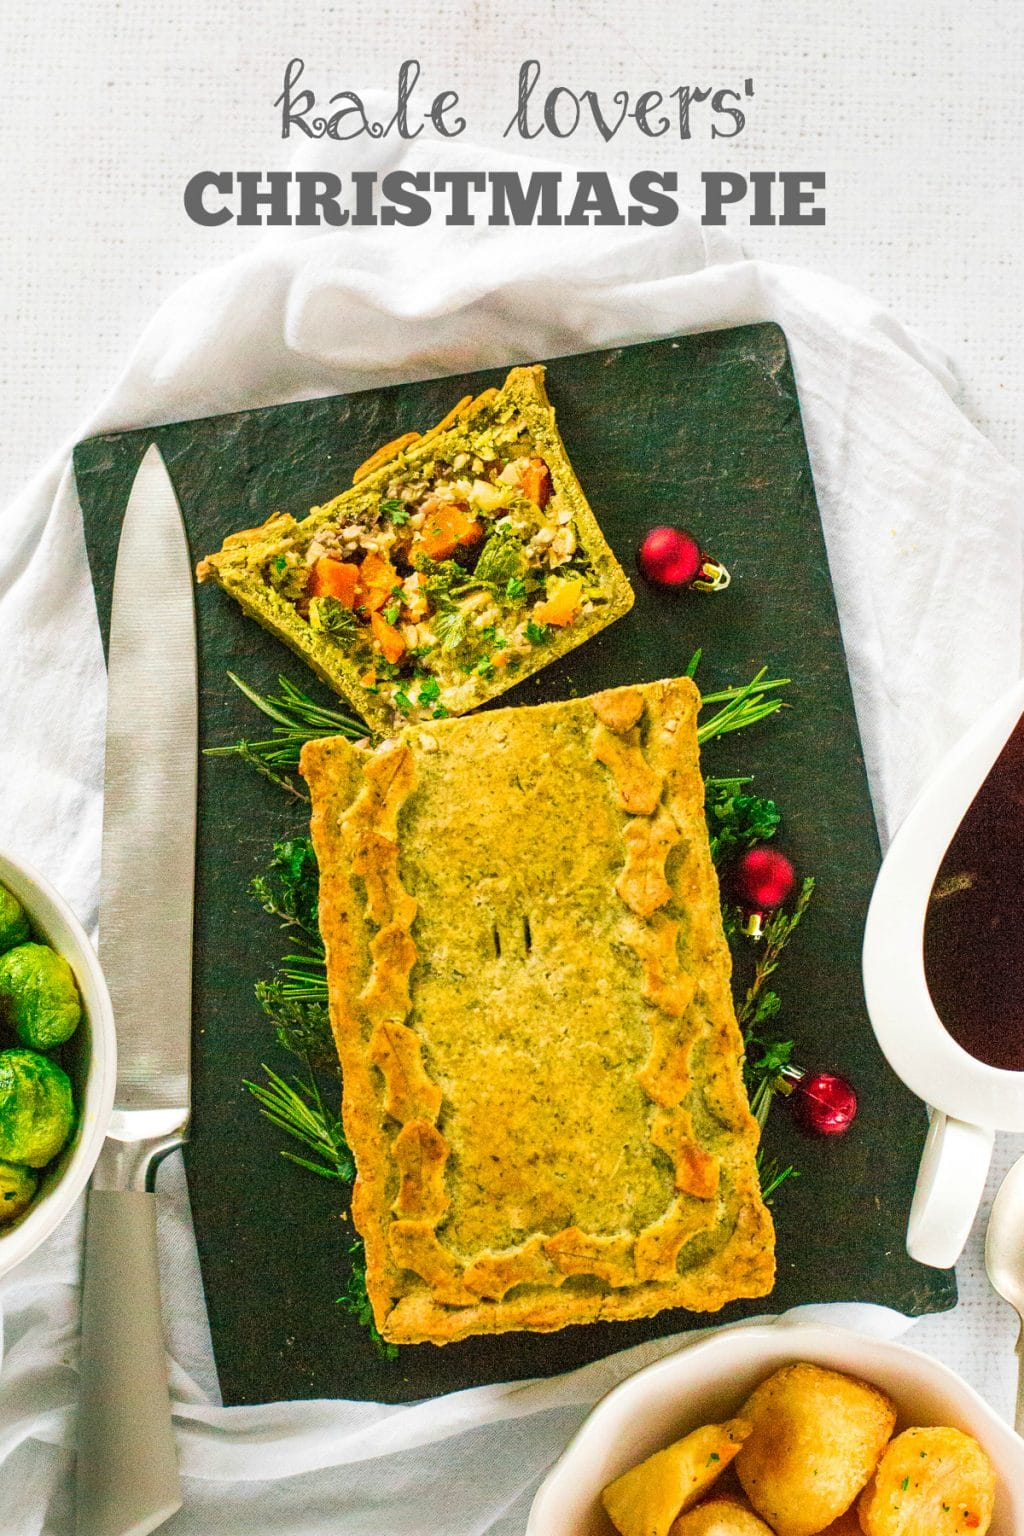 Vegan christmas dinner recipe kale lovers christmas pie the veg vegan christmas dinner recipe kale lovers christmas pie the veg space forumfinder Image collections